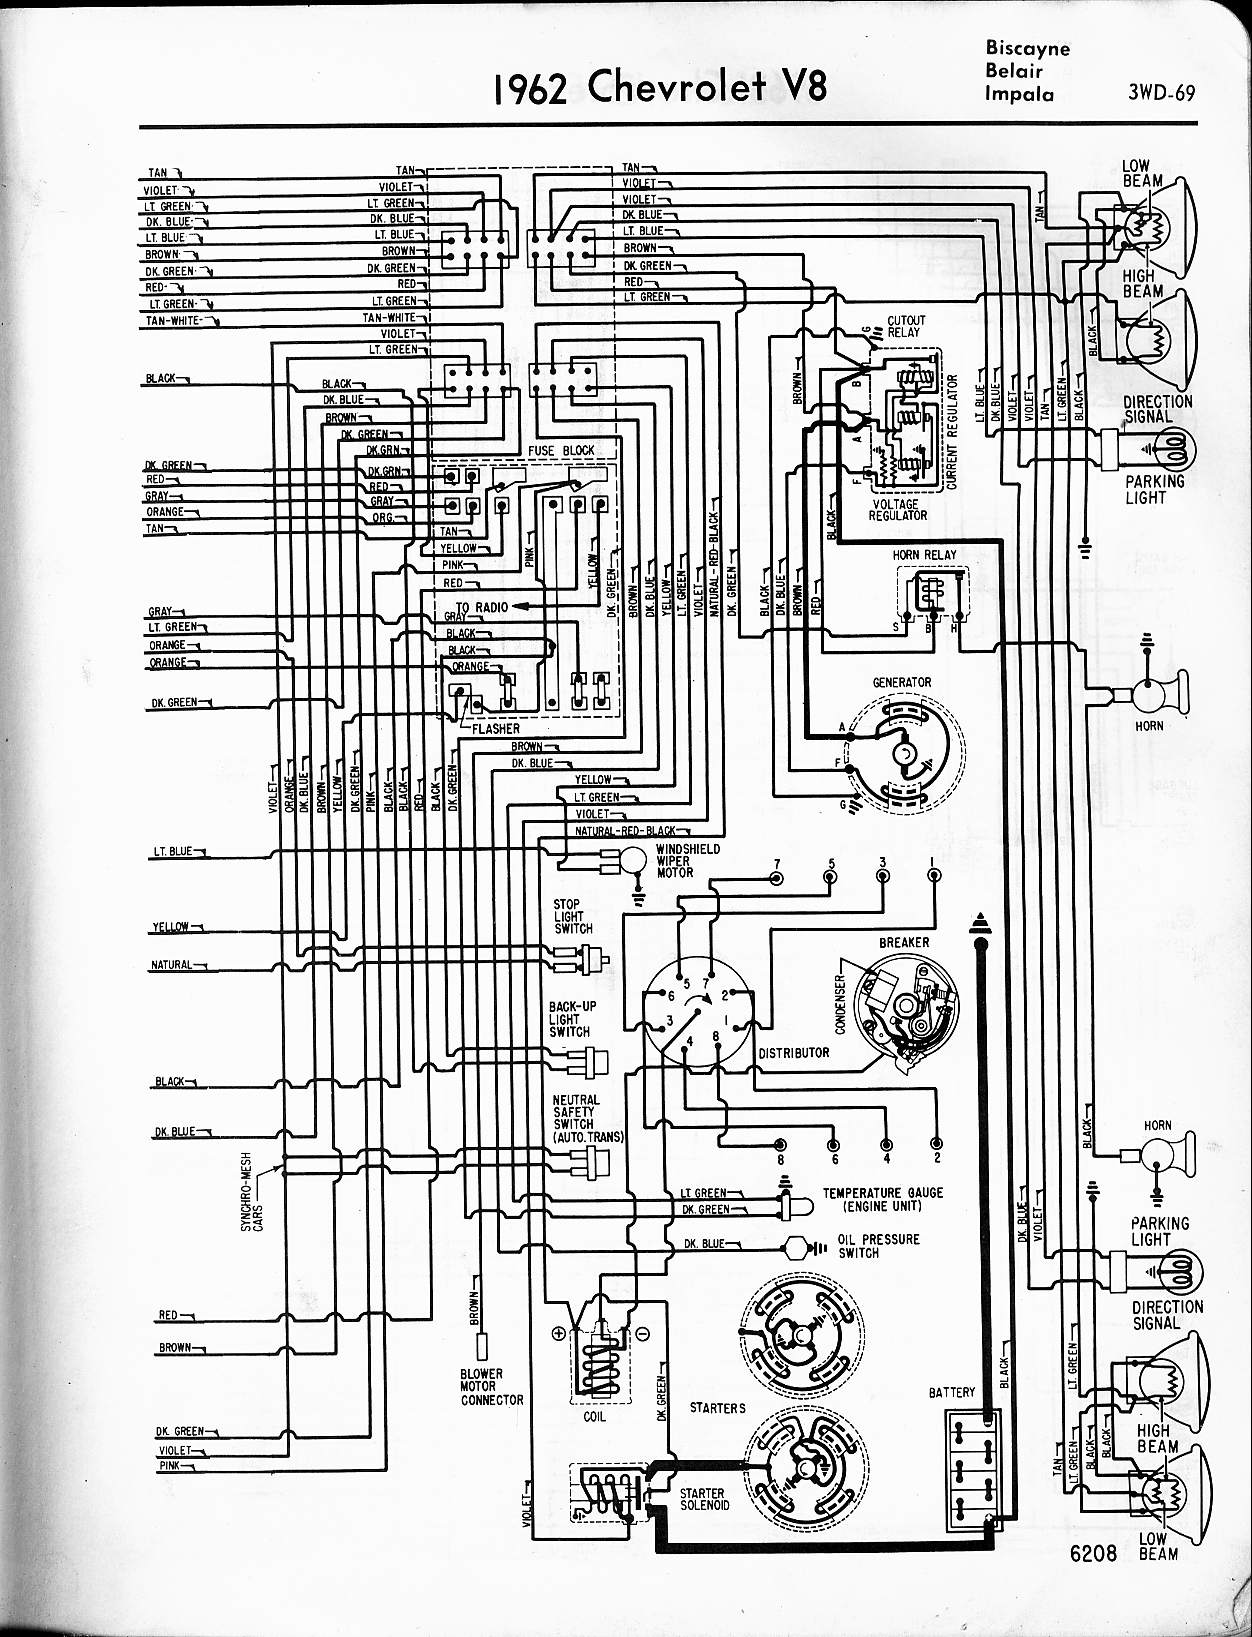 MWireChev62_3WD 069 1963 impala engine wiring diagram 1963 chevy nova wiring diagram 66 impala wiring diagram at virtualis.co